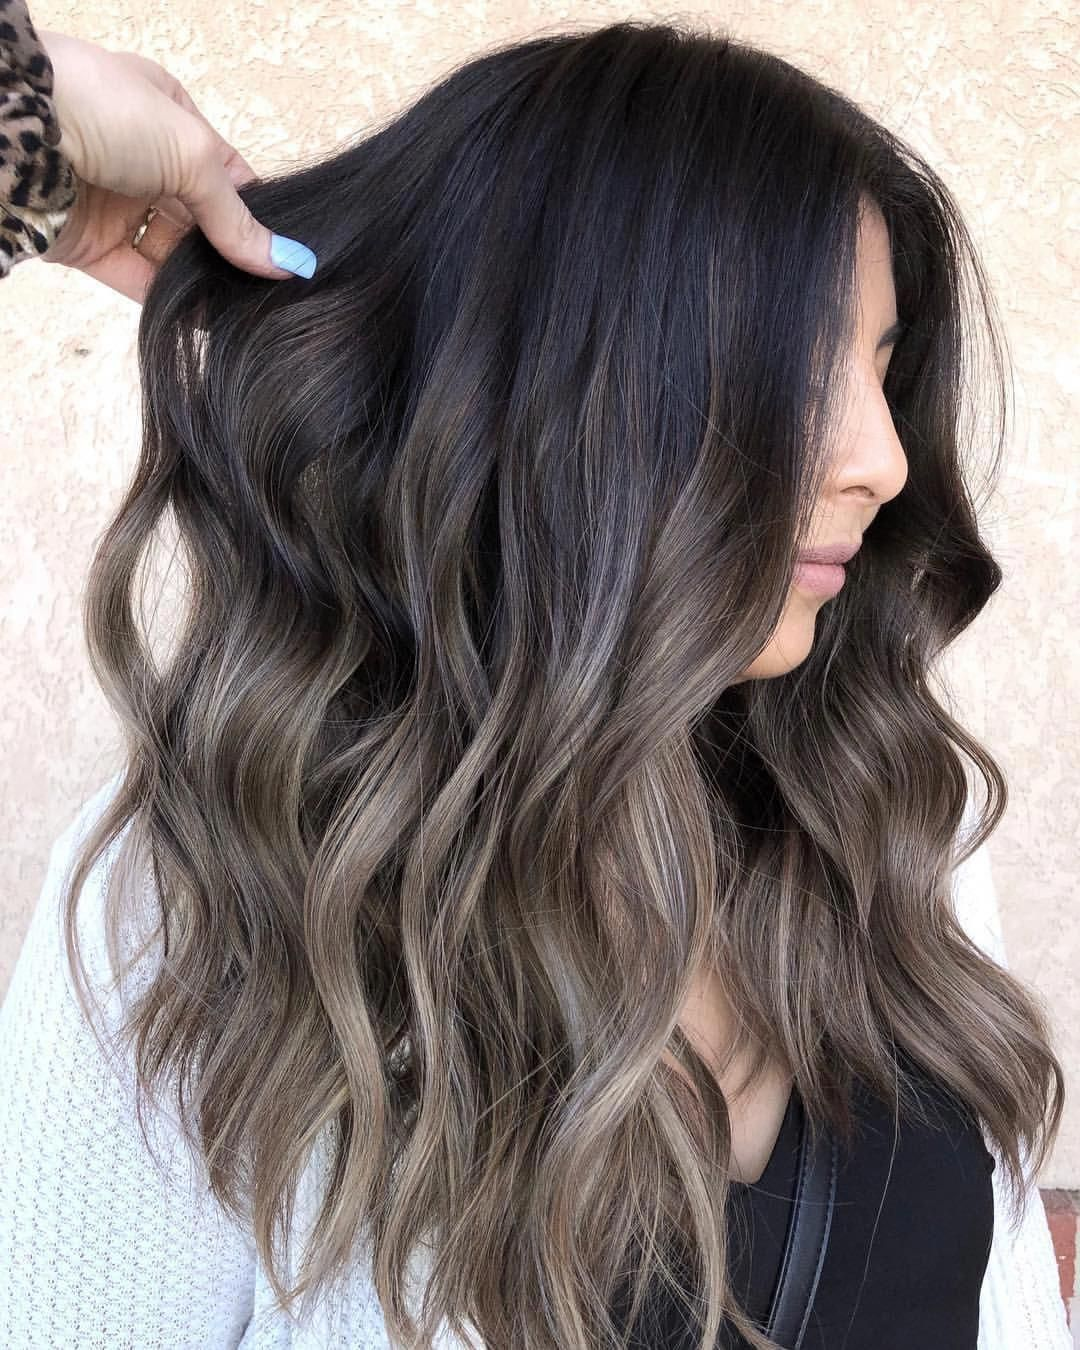 Pin on hair color balayage trends